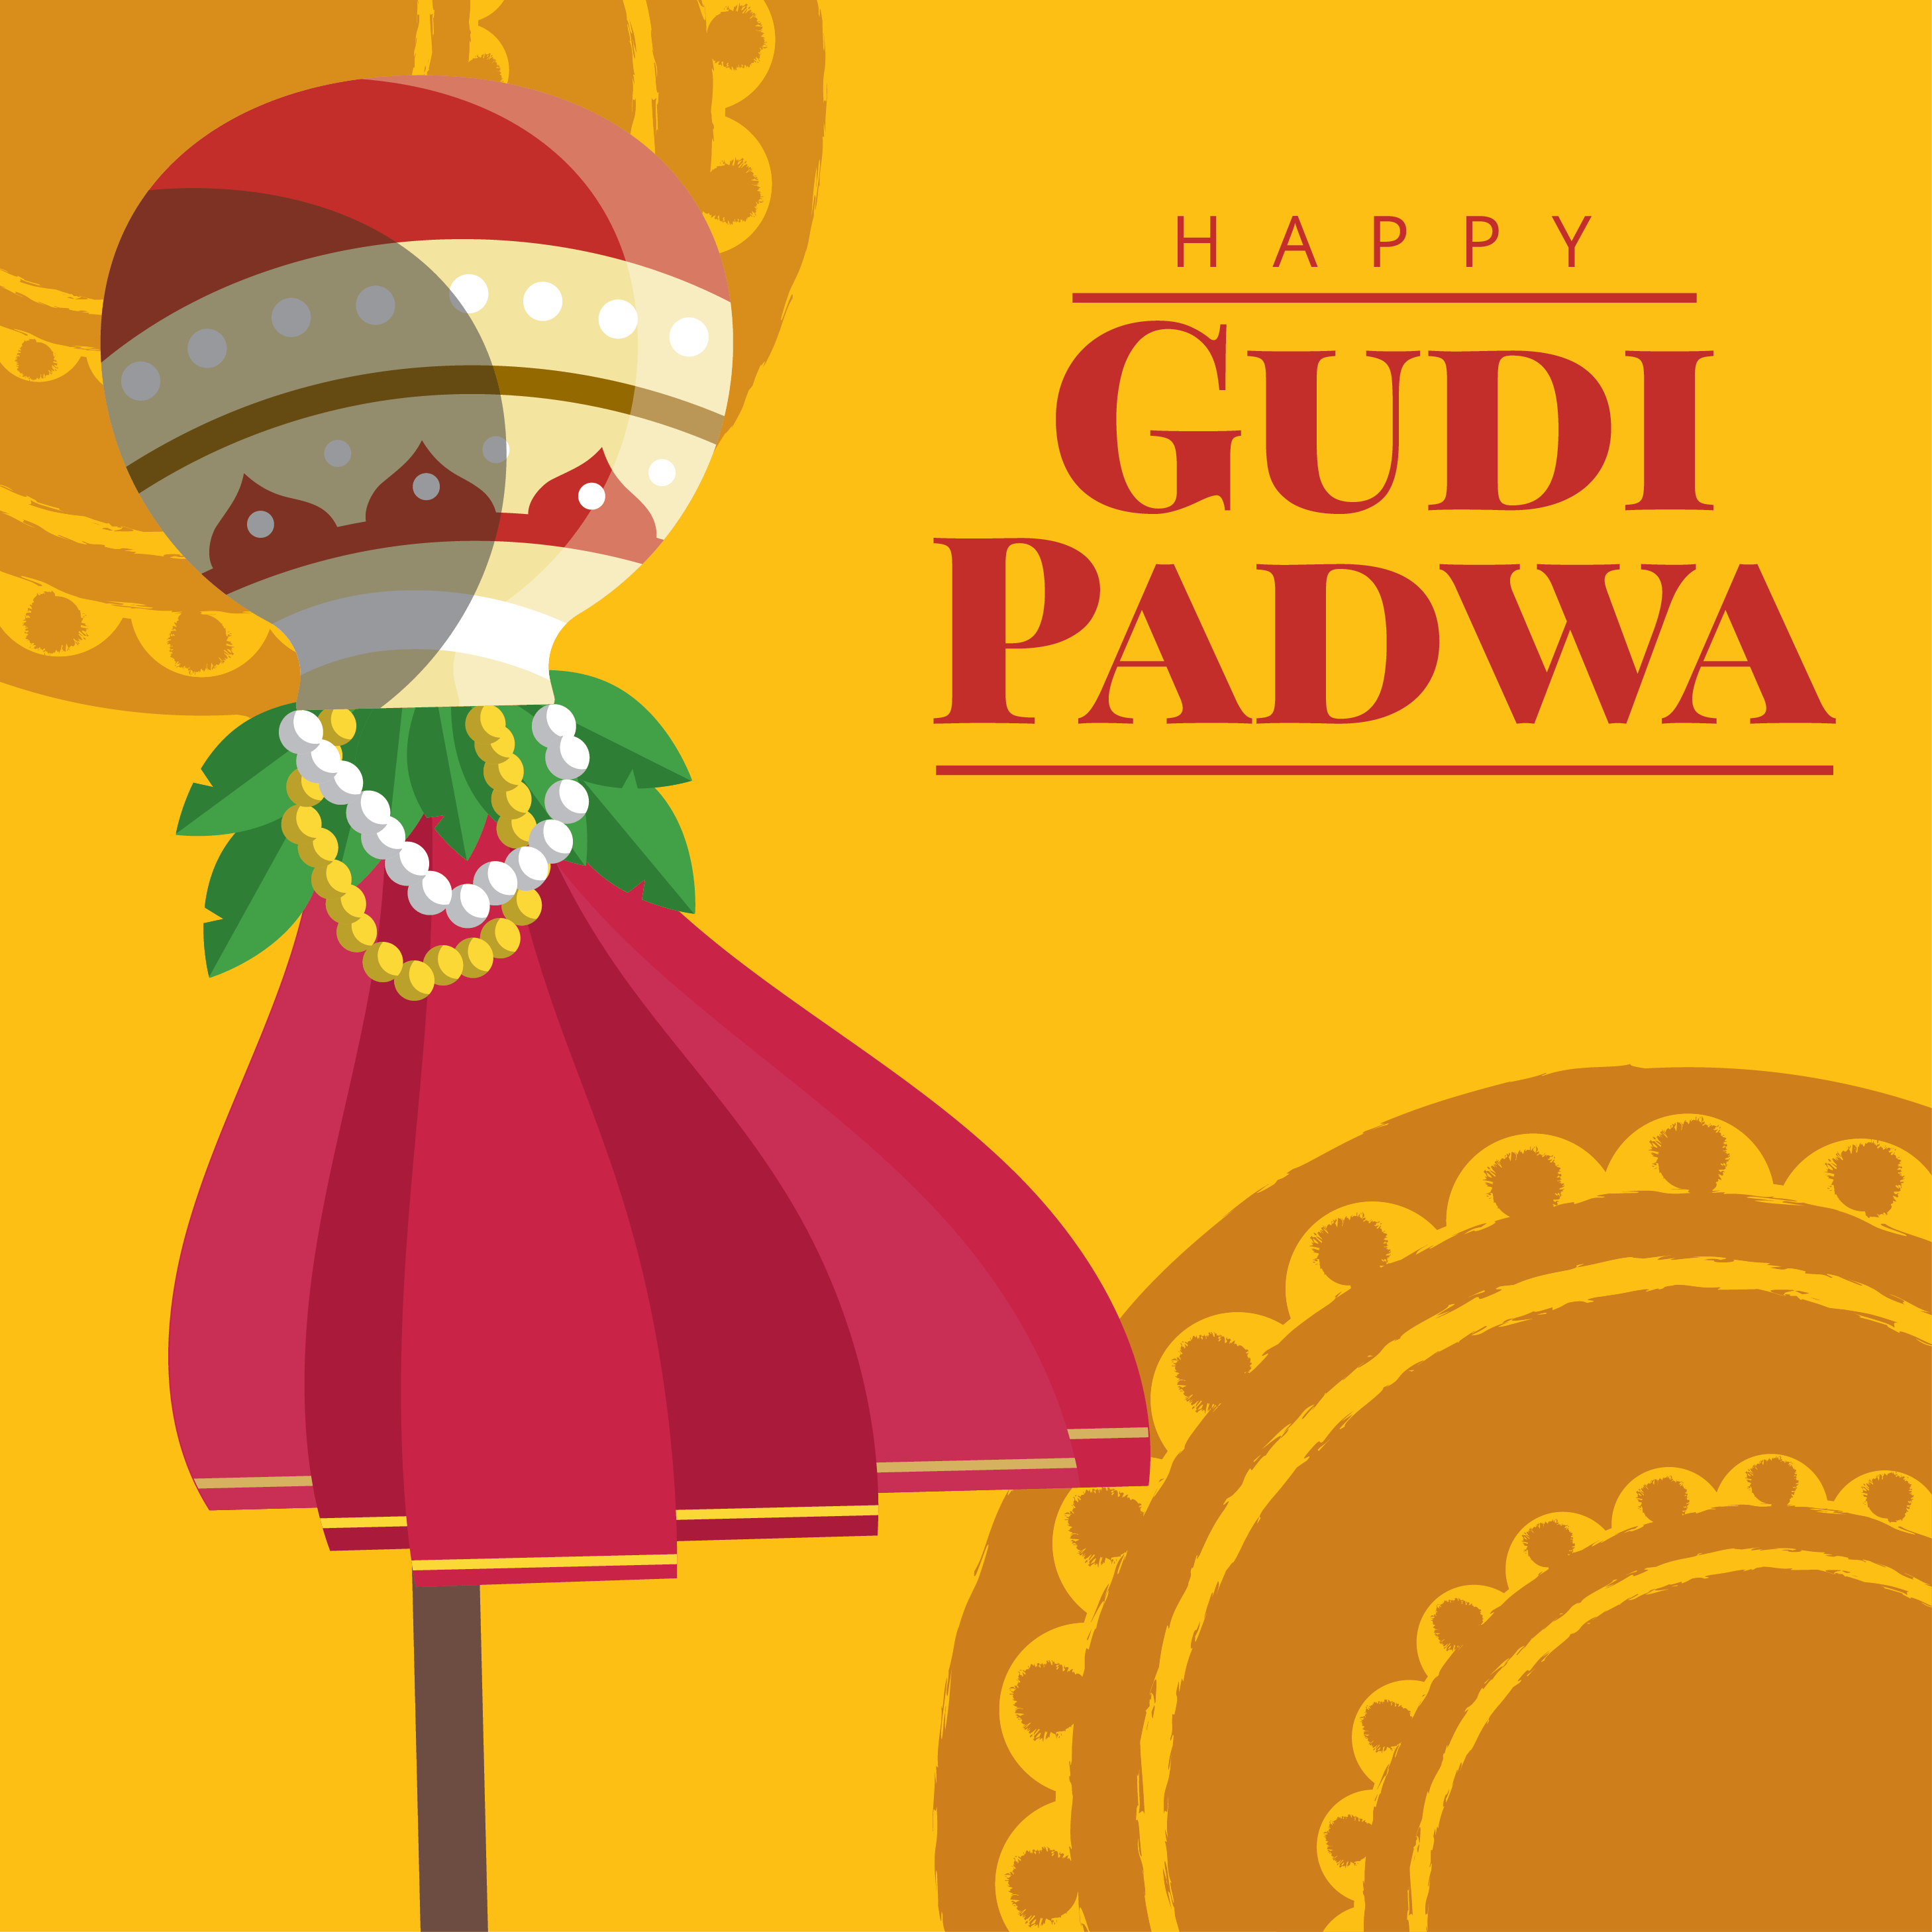 Gudi Padwa Greeting Card Download Free Vector Art Stock Graphics